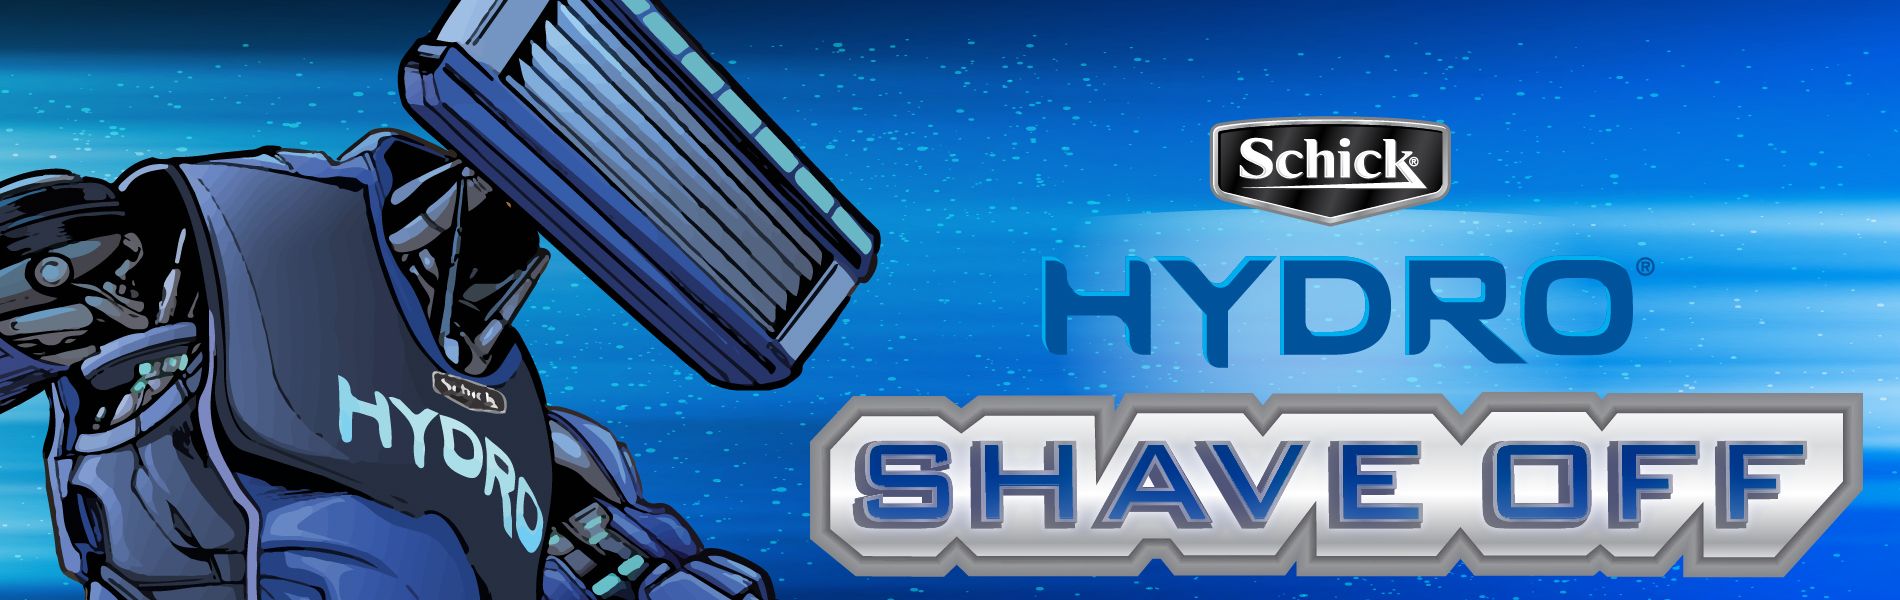 "Check out Schick Hydro's first-ever video game - the ""Schick Shave Off"" - as a part of the brand's debut at New York Comic-Con from Thursday, October 5 - Sunday, October 8, 2017 at the Jacob Javits Center in New York City."